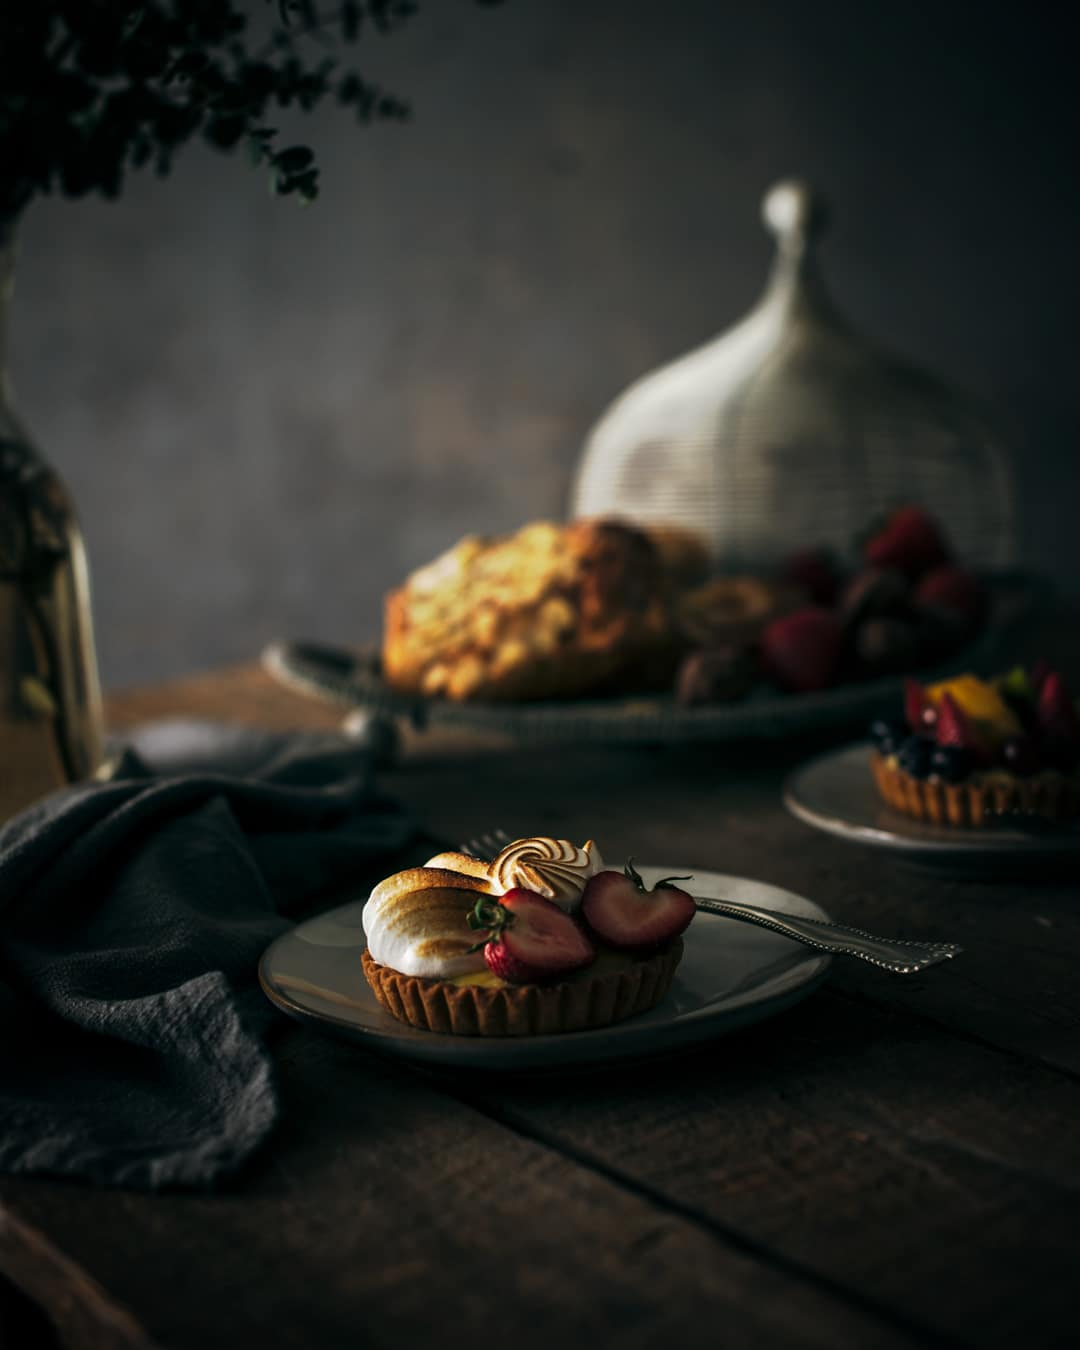 French pastries for breakfast